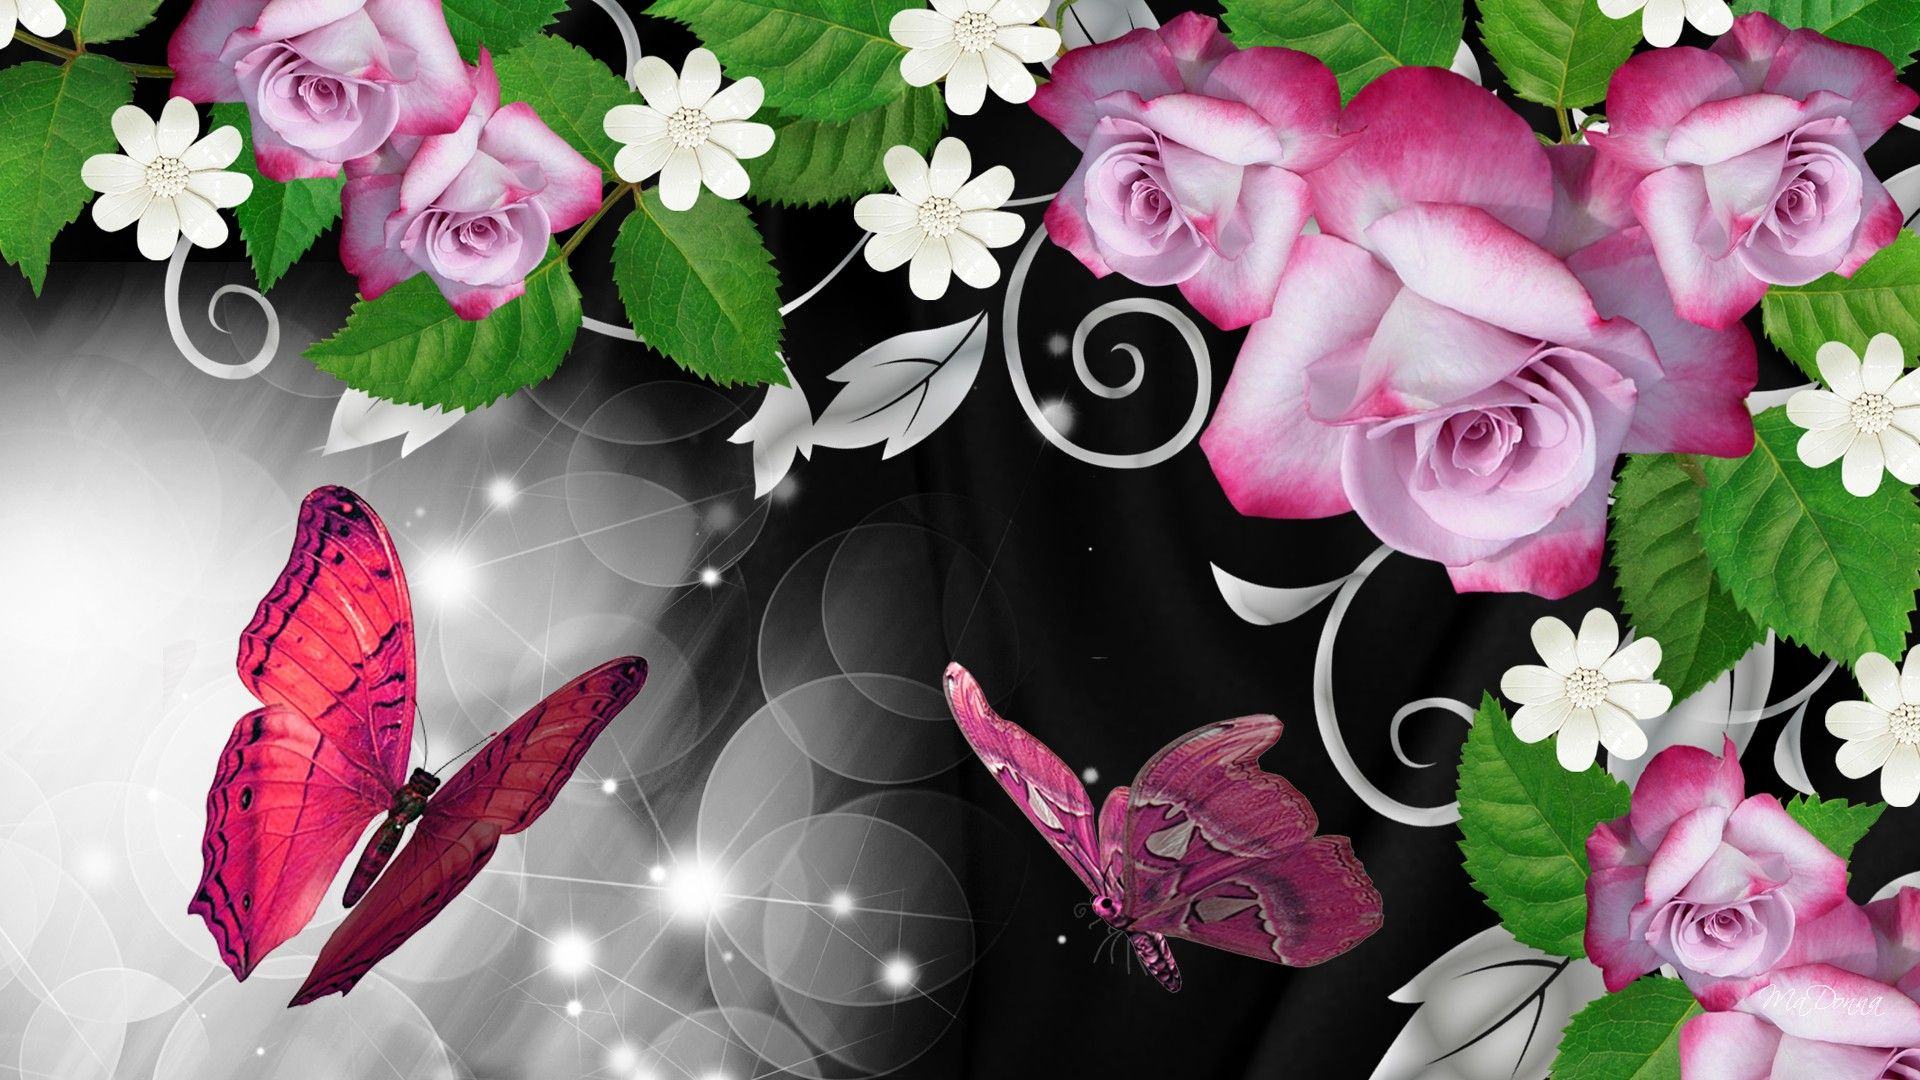 wallpaper butterfly red rose - photo #34